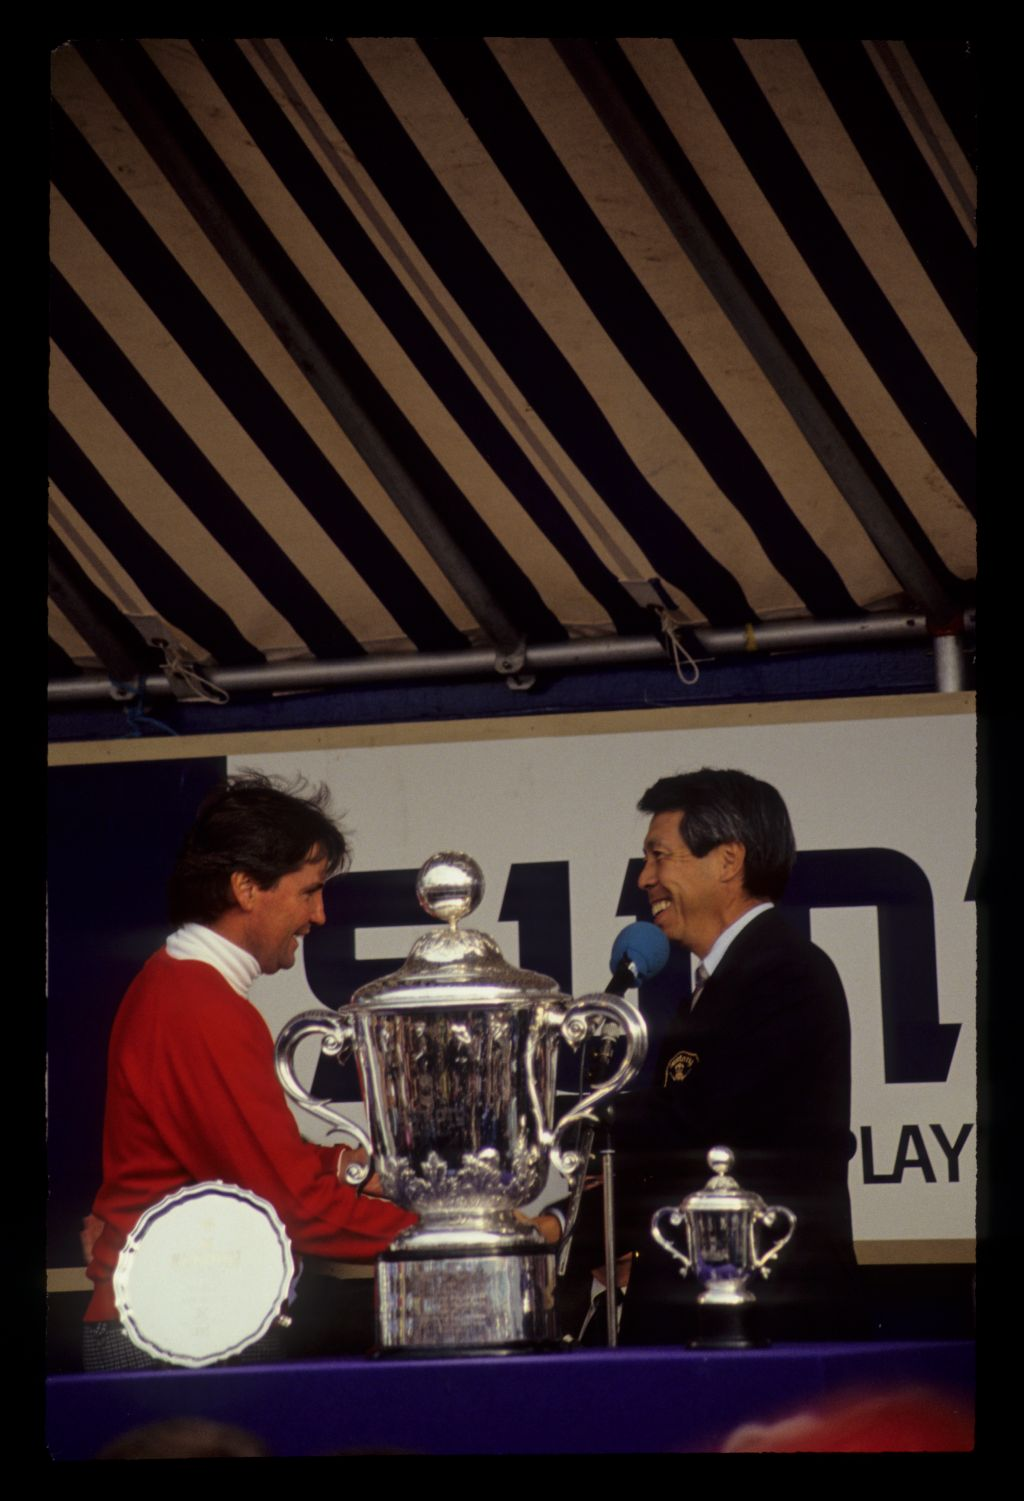 Mark McNulty receiving the runner up prize during the 1990 Suntory World Matchplay